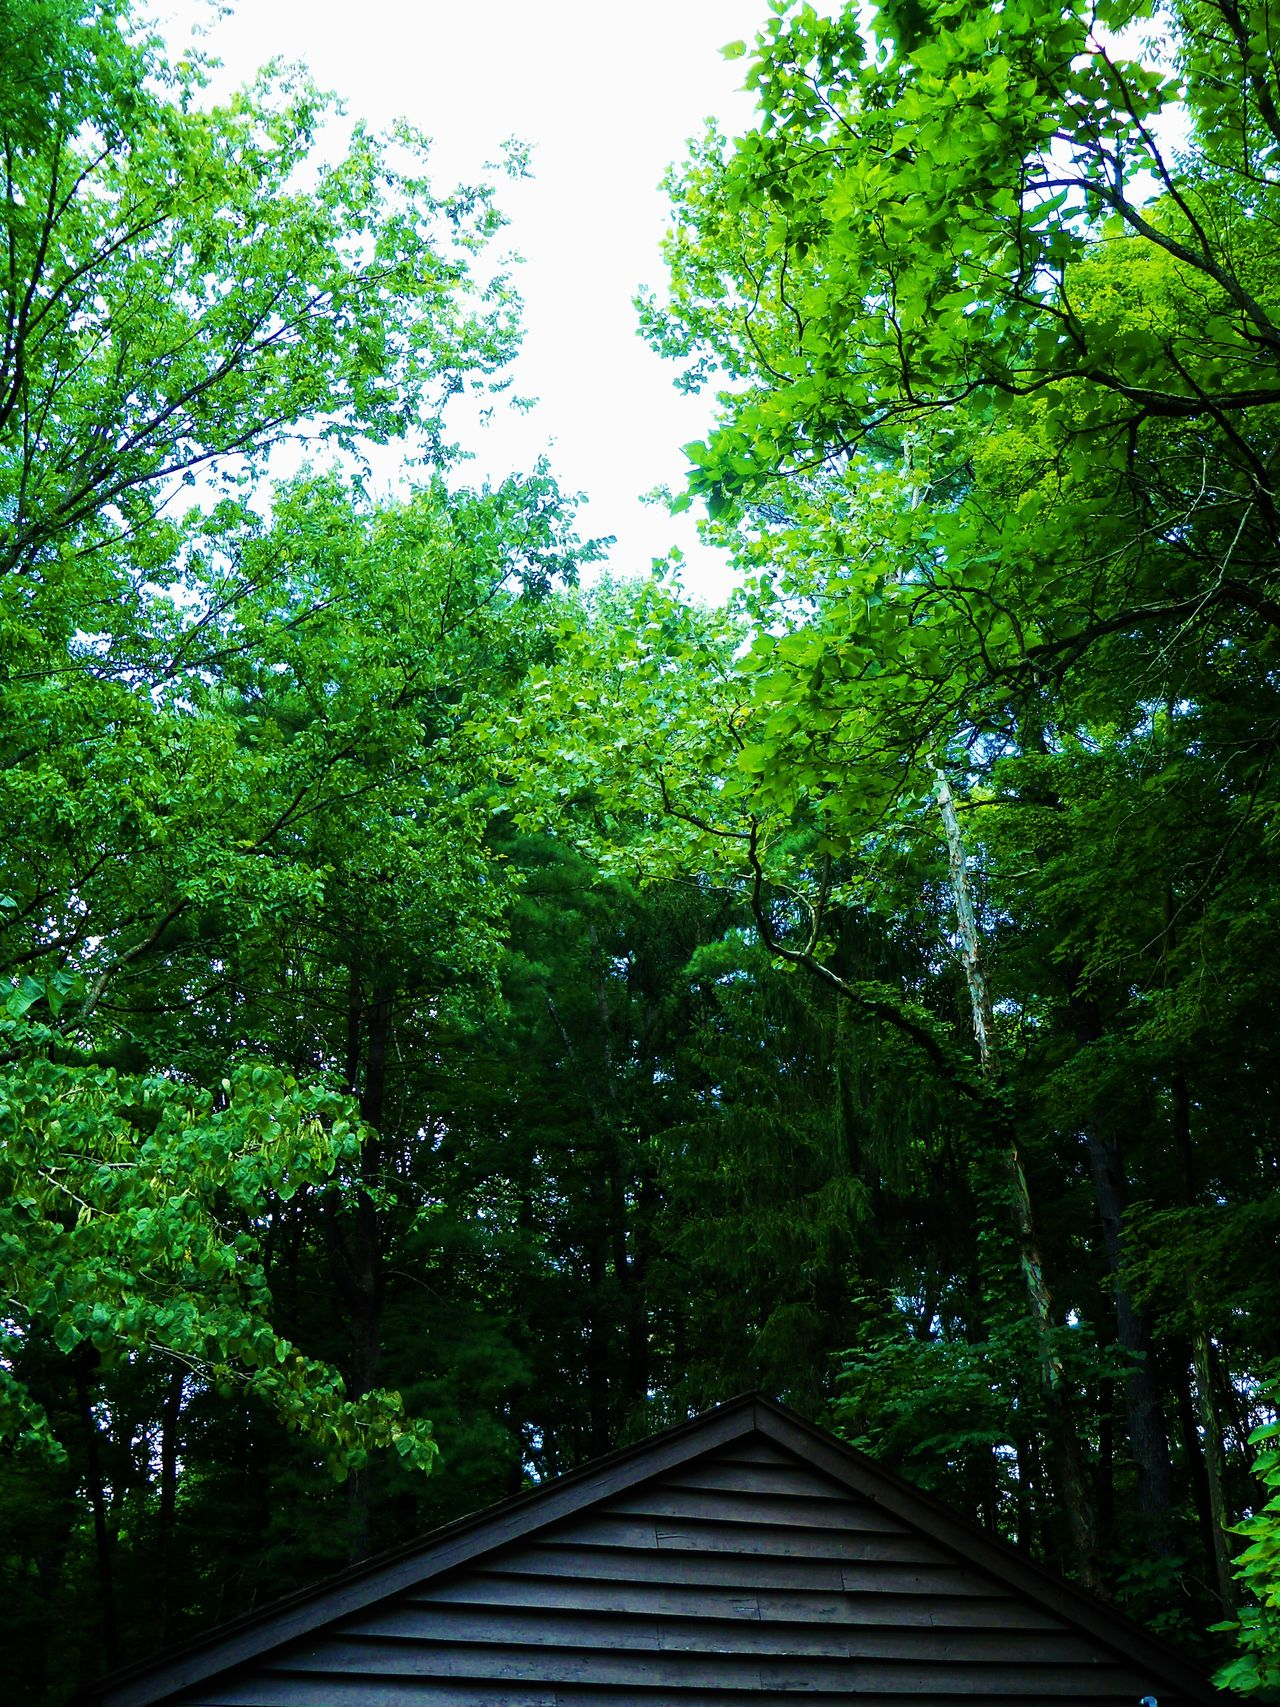 CCC site at McCormick's Creek Beauty In Nature Built Structure CCCamp Day Green Green Color Growth Low Angle View Lush Foliage Nature No People Outdoors Park Rooftop Rooftop Scenery Rooftop View  Rooftopphotography Rooftops Shelter Sky Tranquil Scene Tranquility Tree Trees Woods